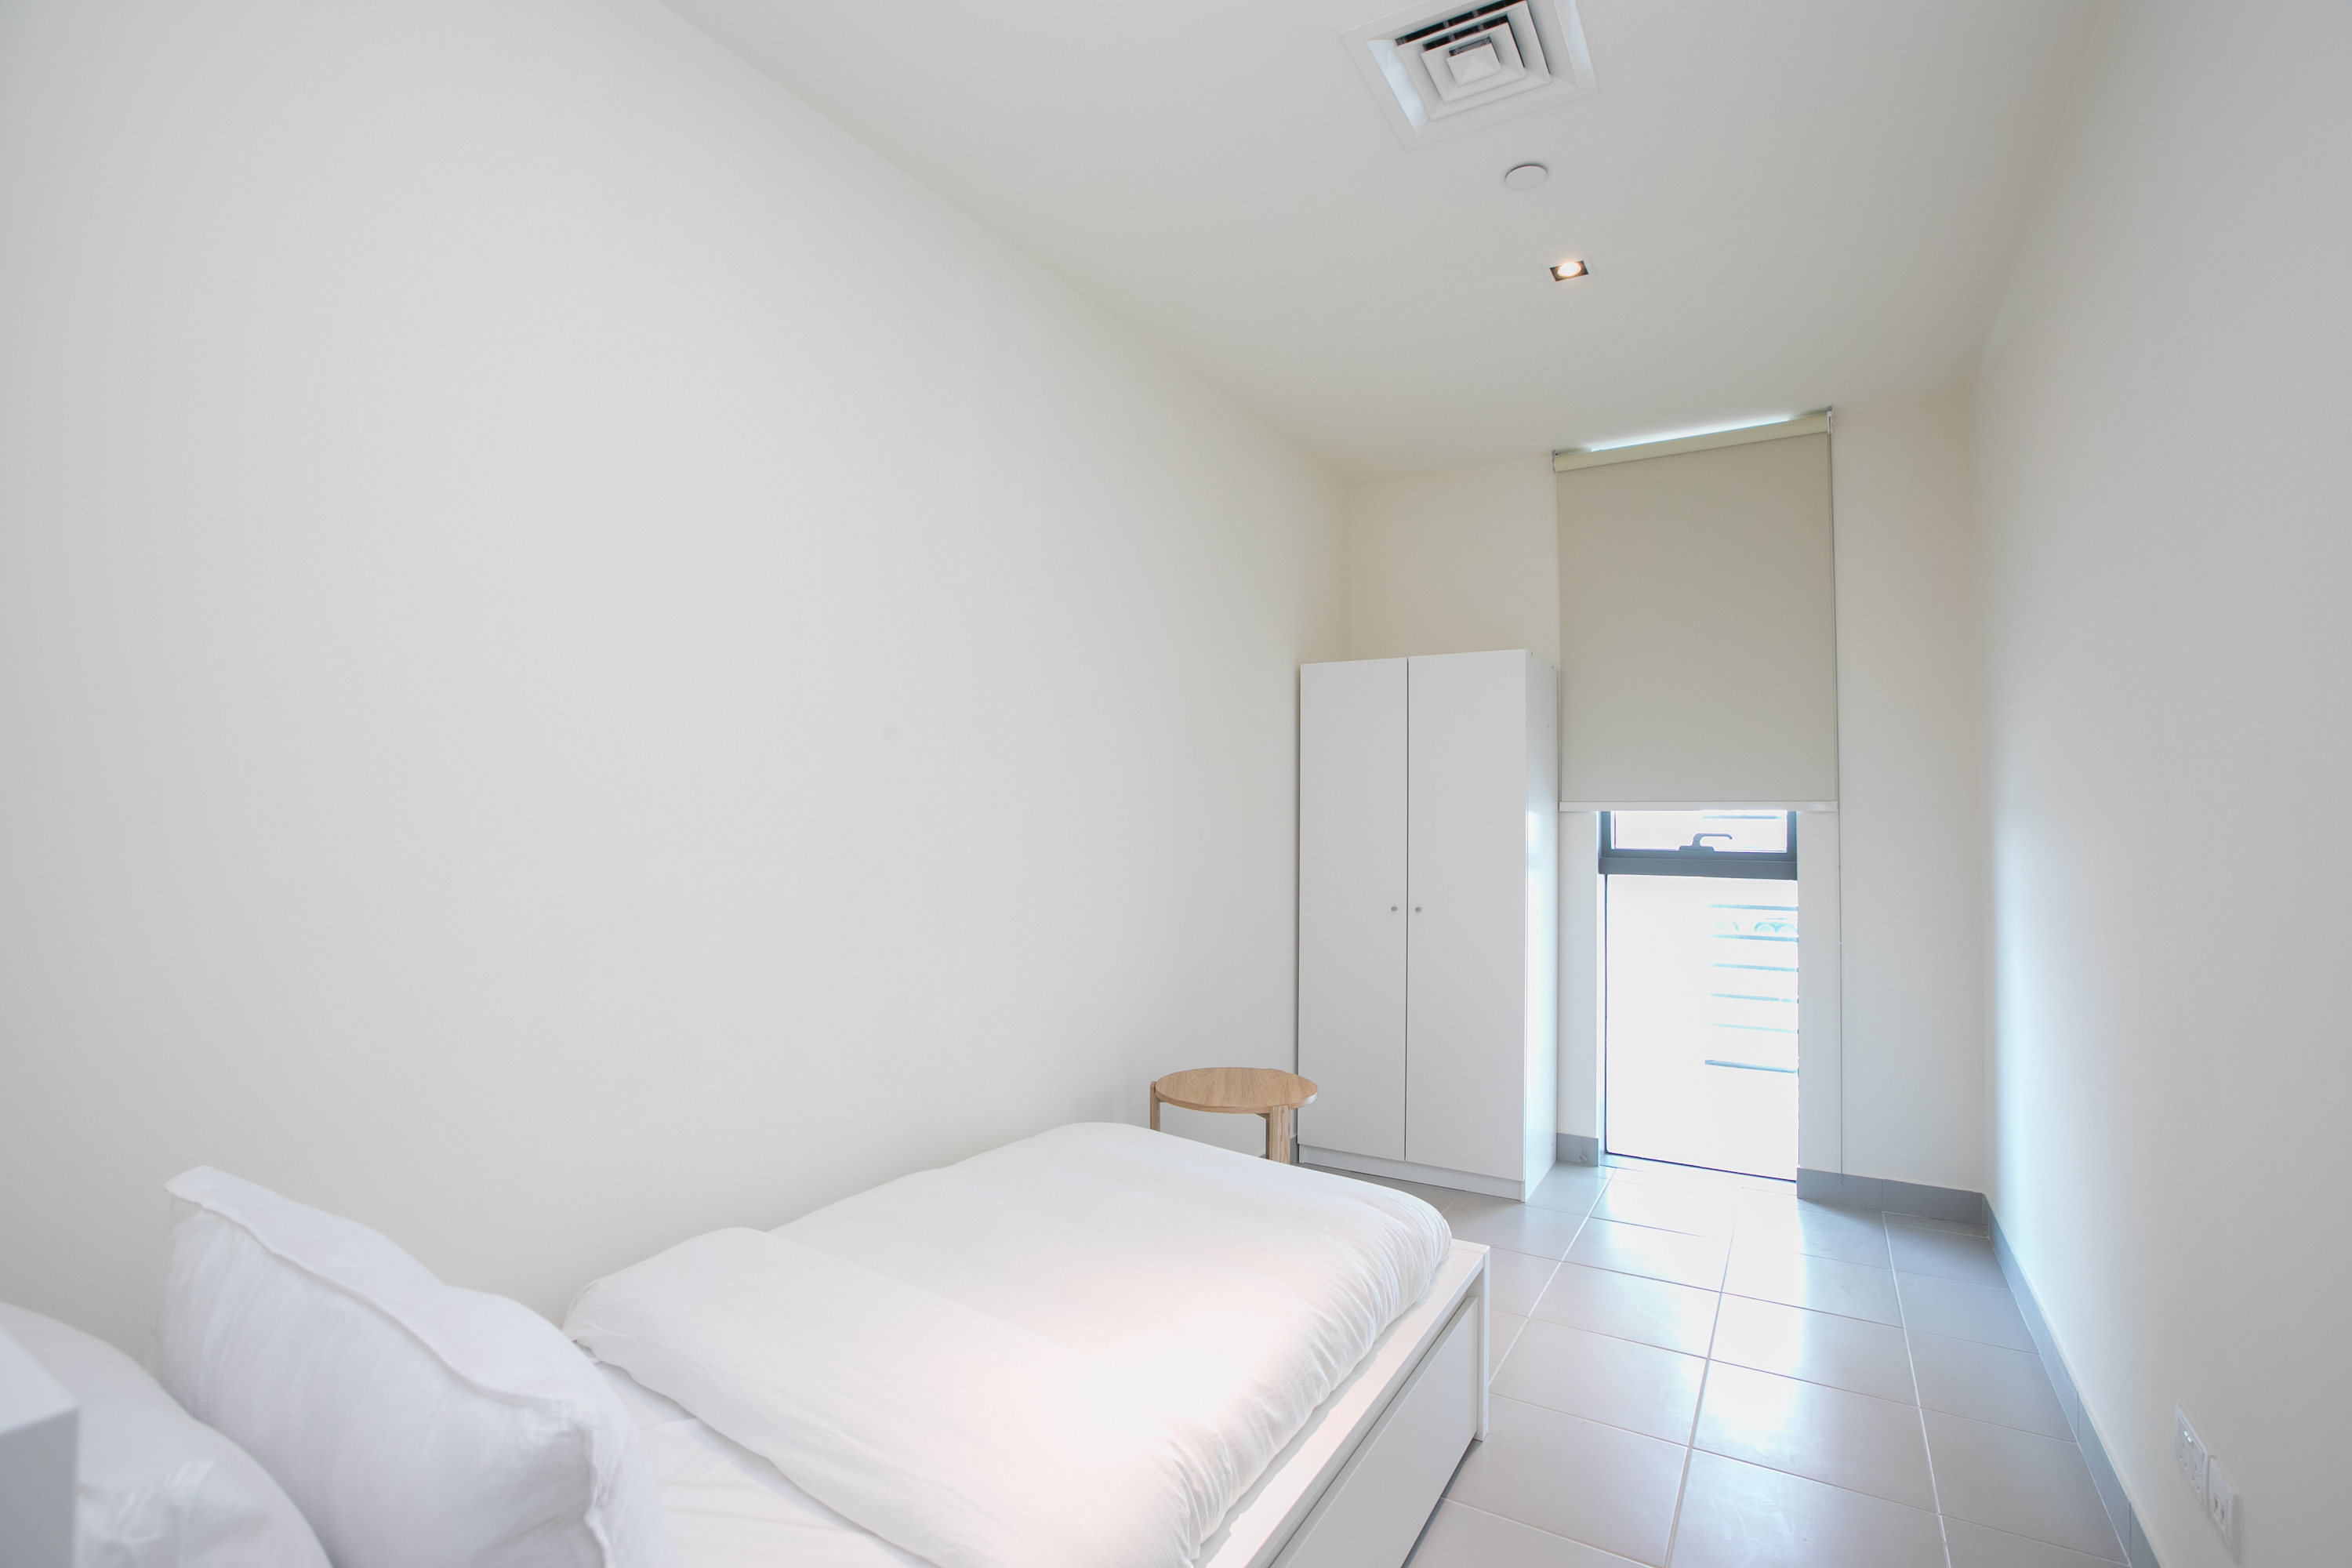 Apartment Fully furnished 3 Bed  Apt  in City Walk 11A  201 photo 16886482